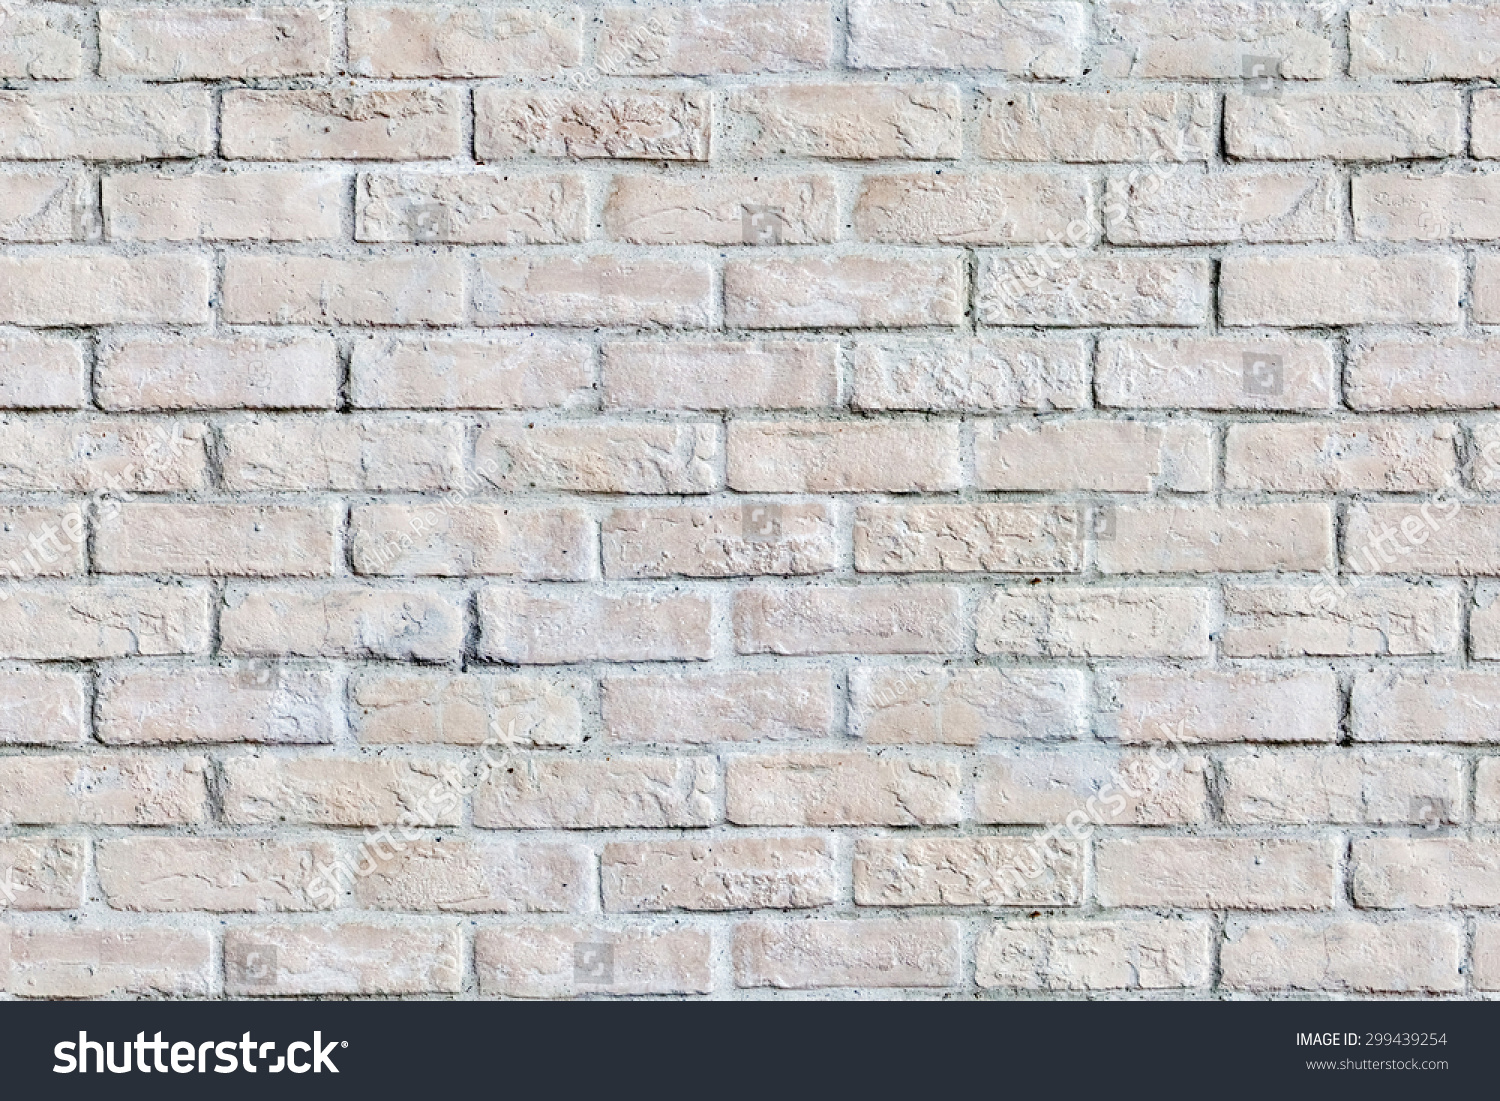 Wall paint texture seamless - Old Painted Brick Wall Texture Seamless